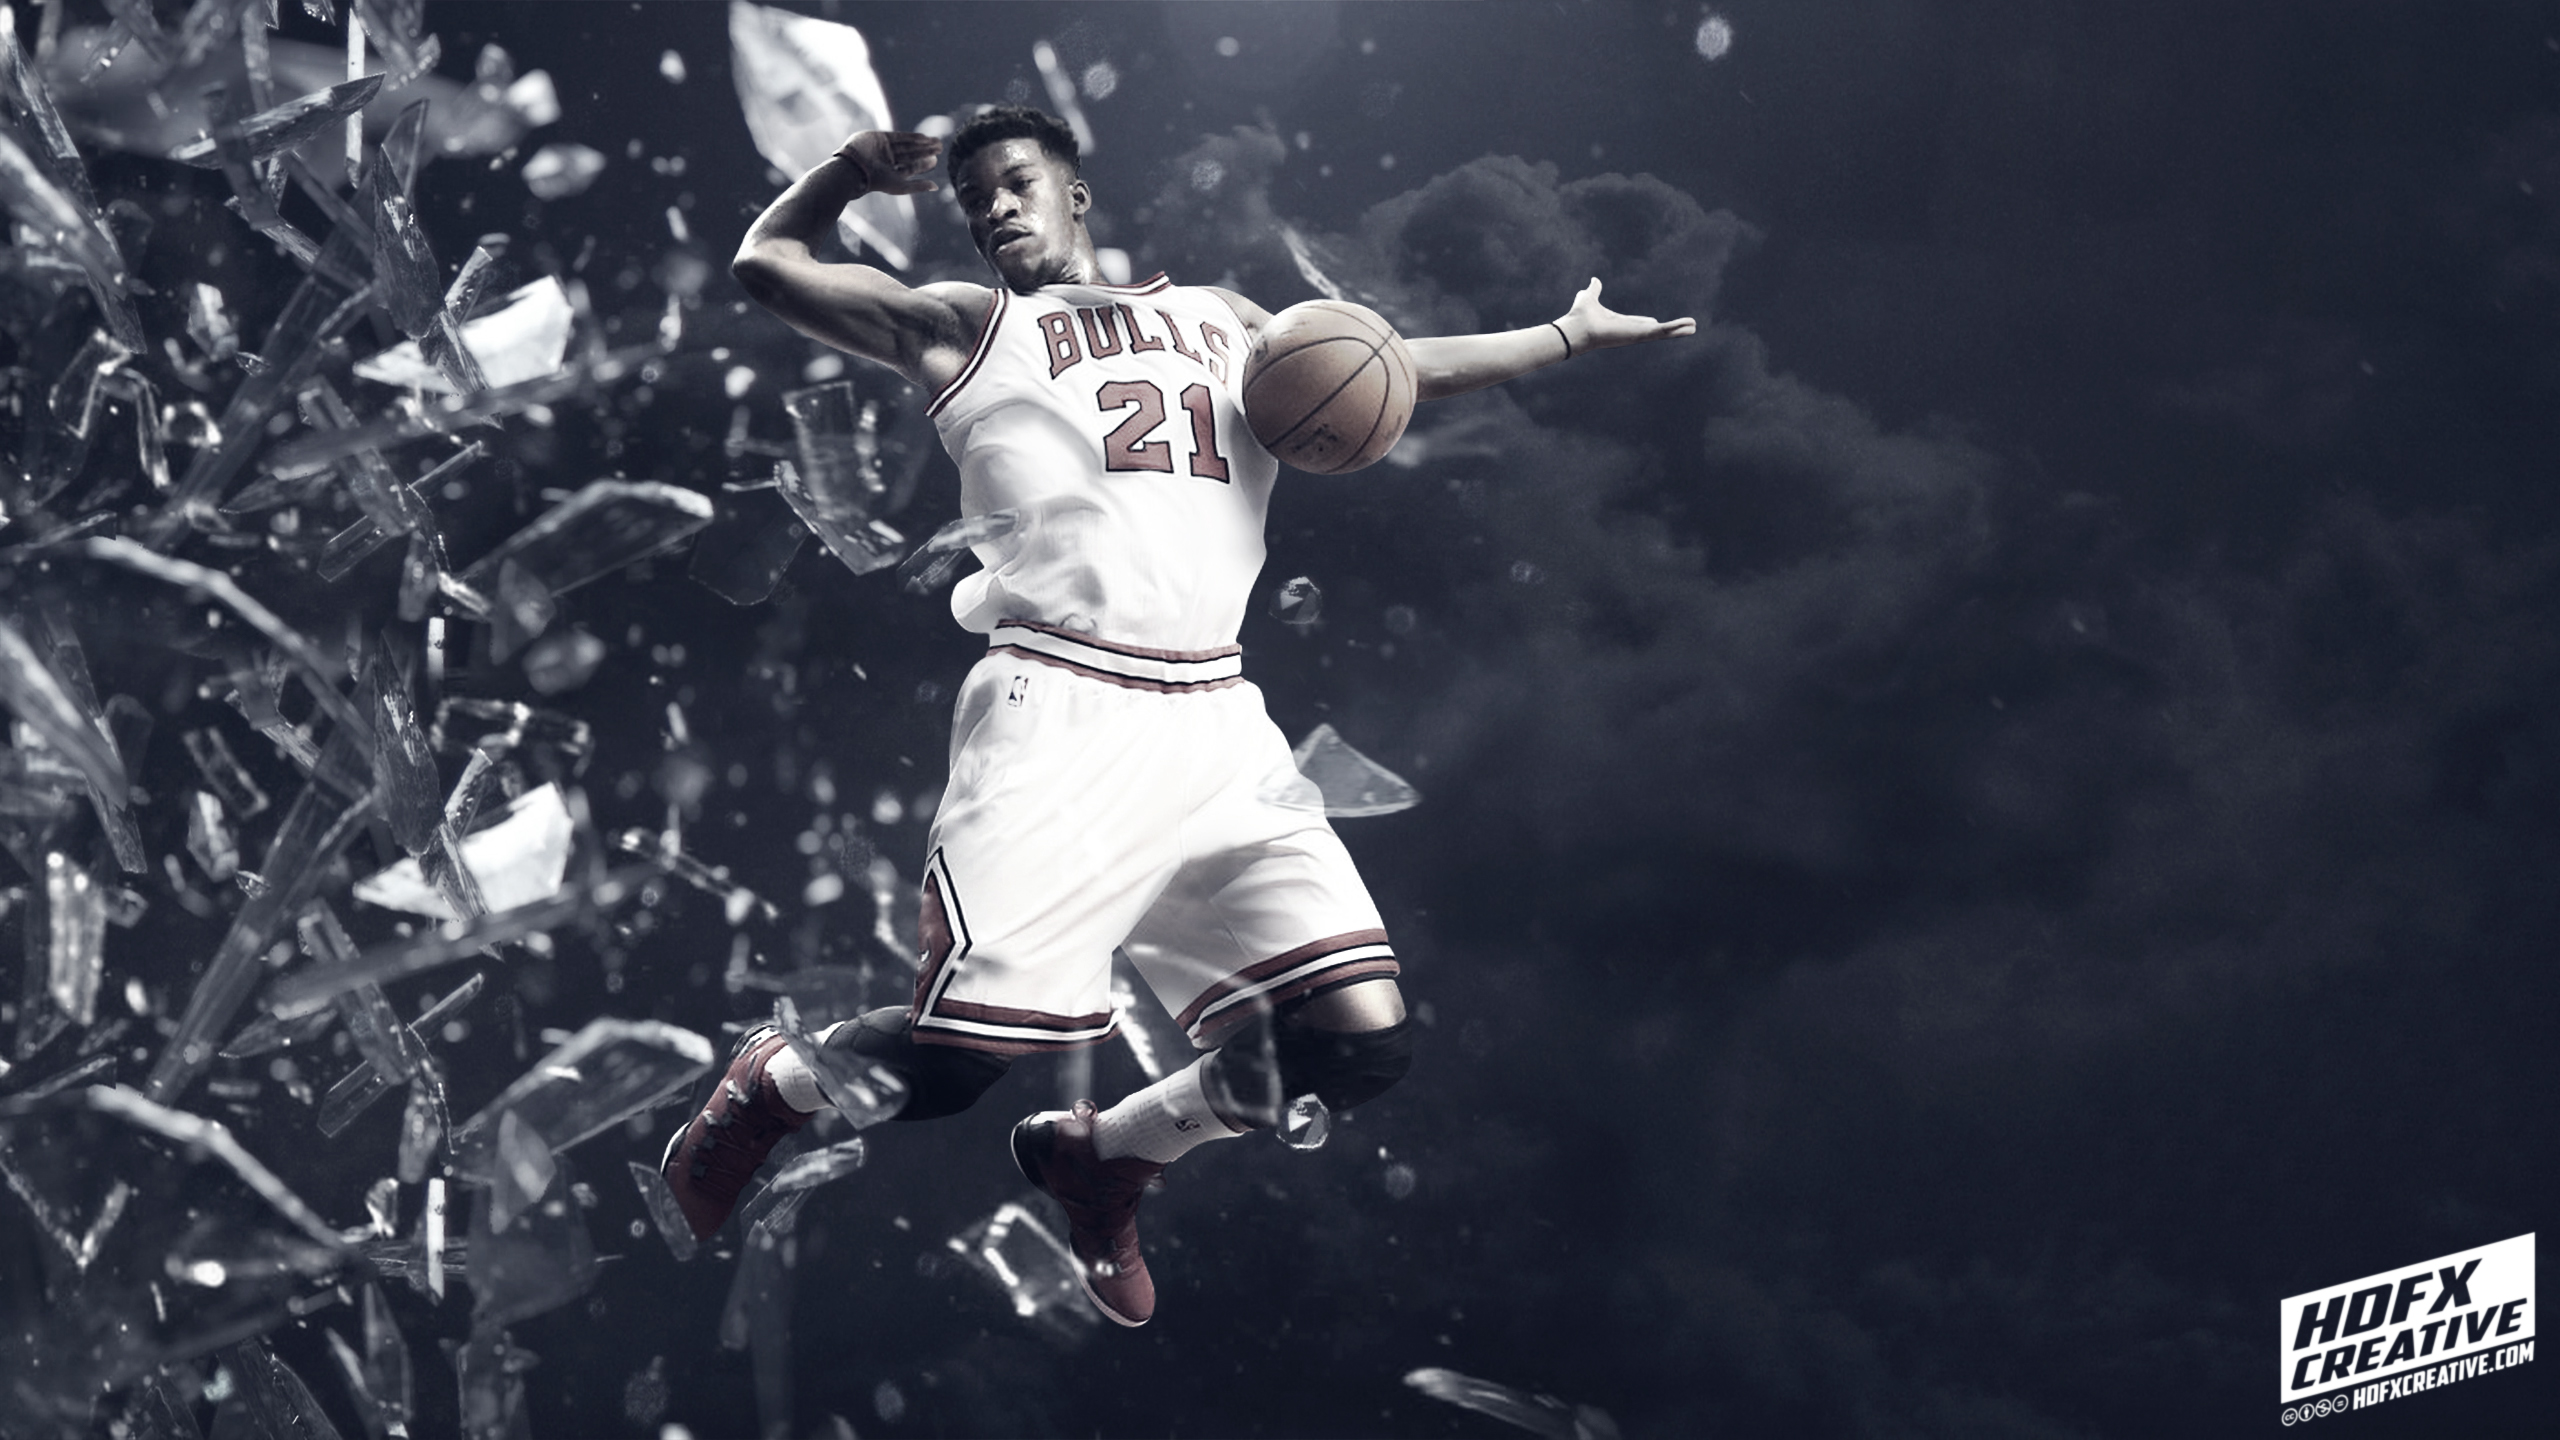 Jimmy Butler Wallpapers High Resolution and Quality Download 2560x1440